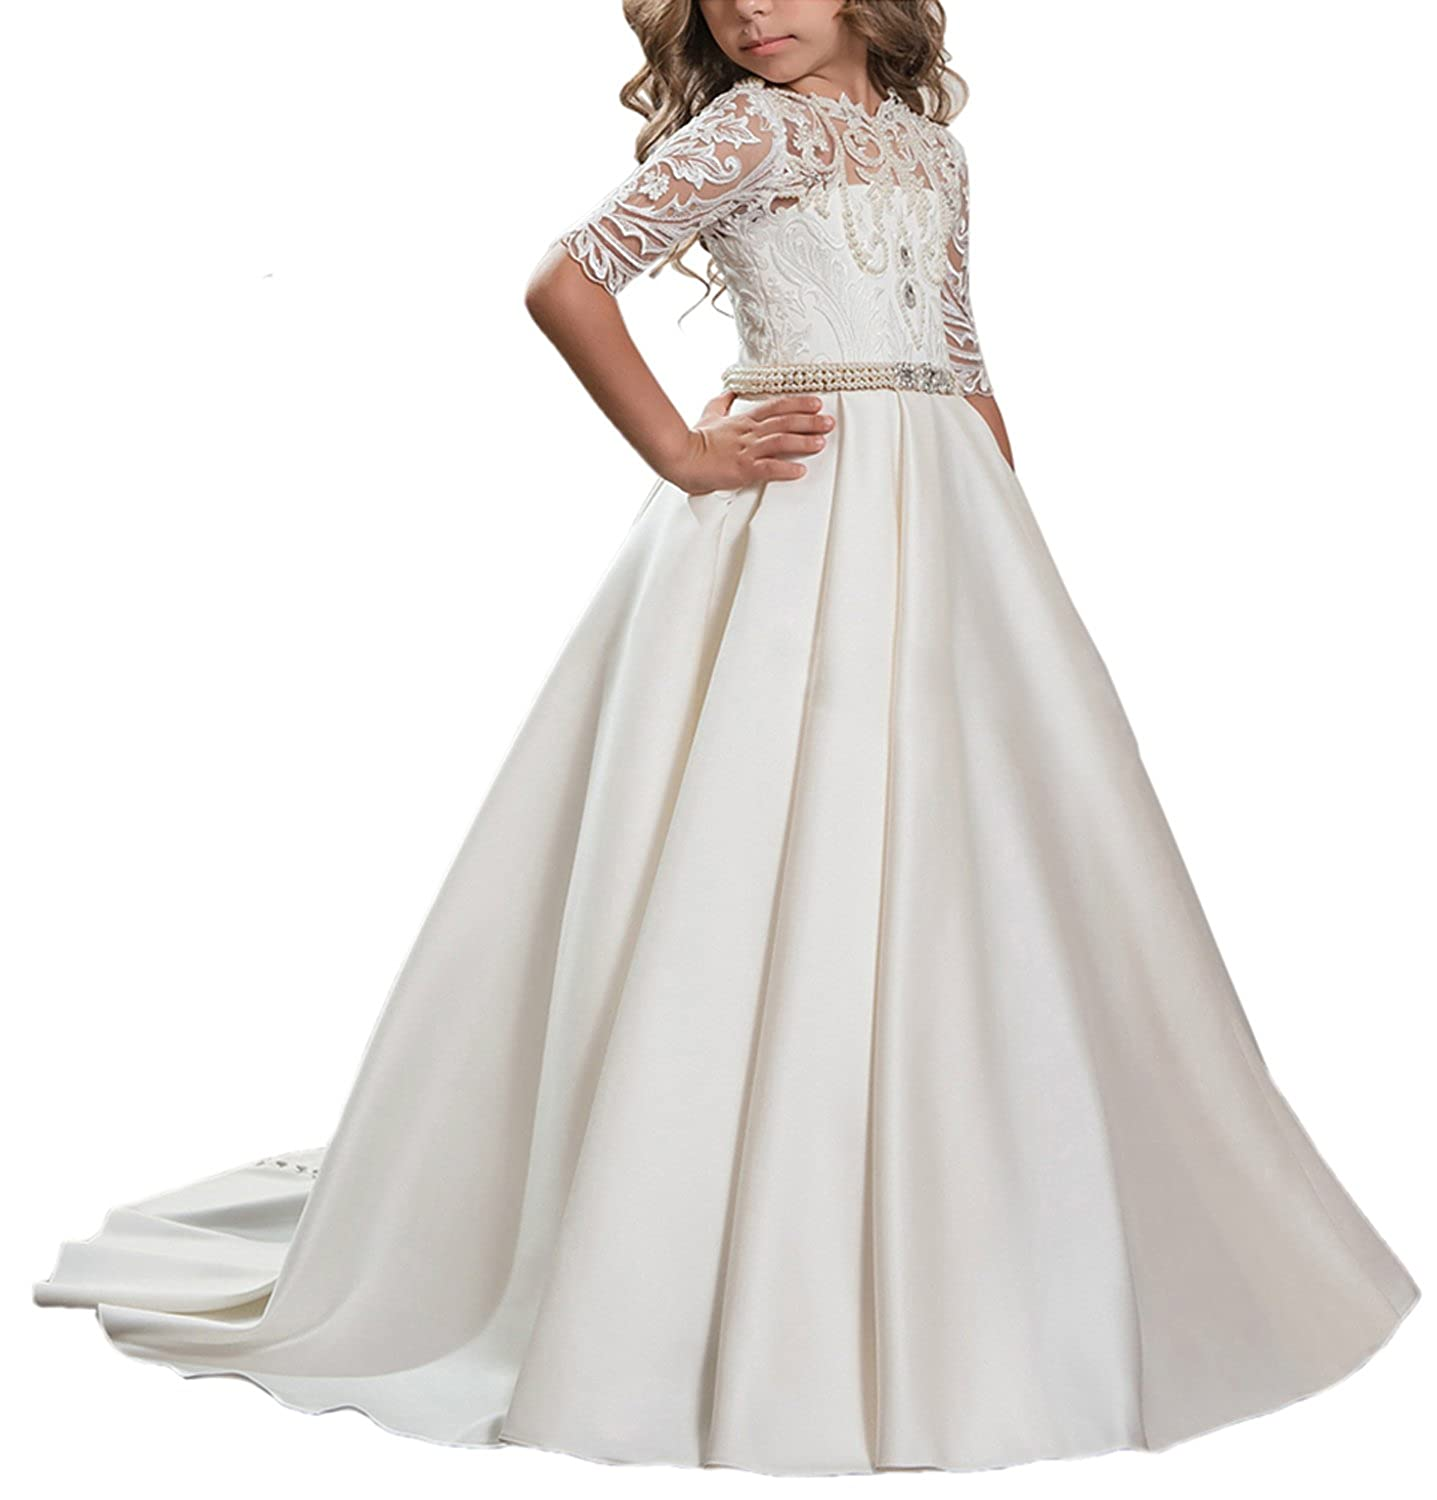 514c027225ab PROMNOVAS Girl's Half Sleeves Satin Flower Girl Dresses First Communion  Dresses: Amazon.ca: Clothing & Accessories